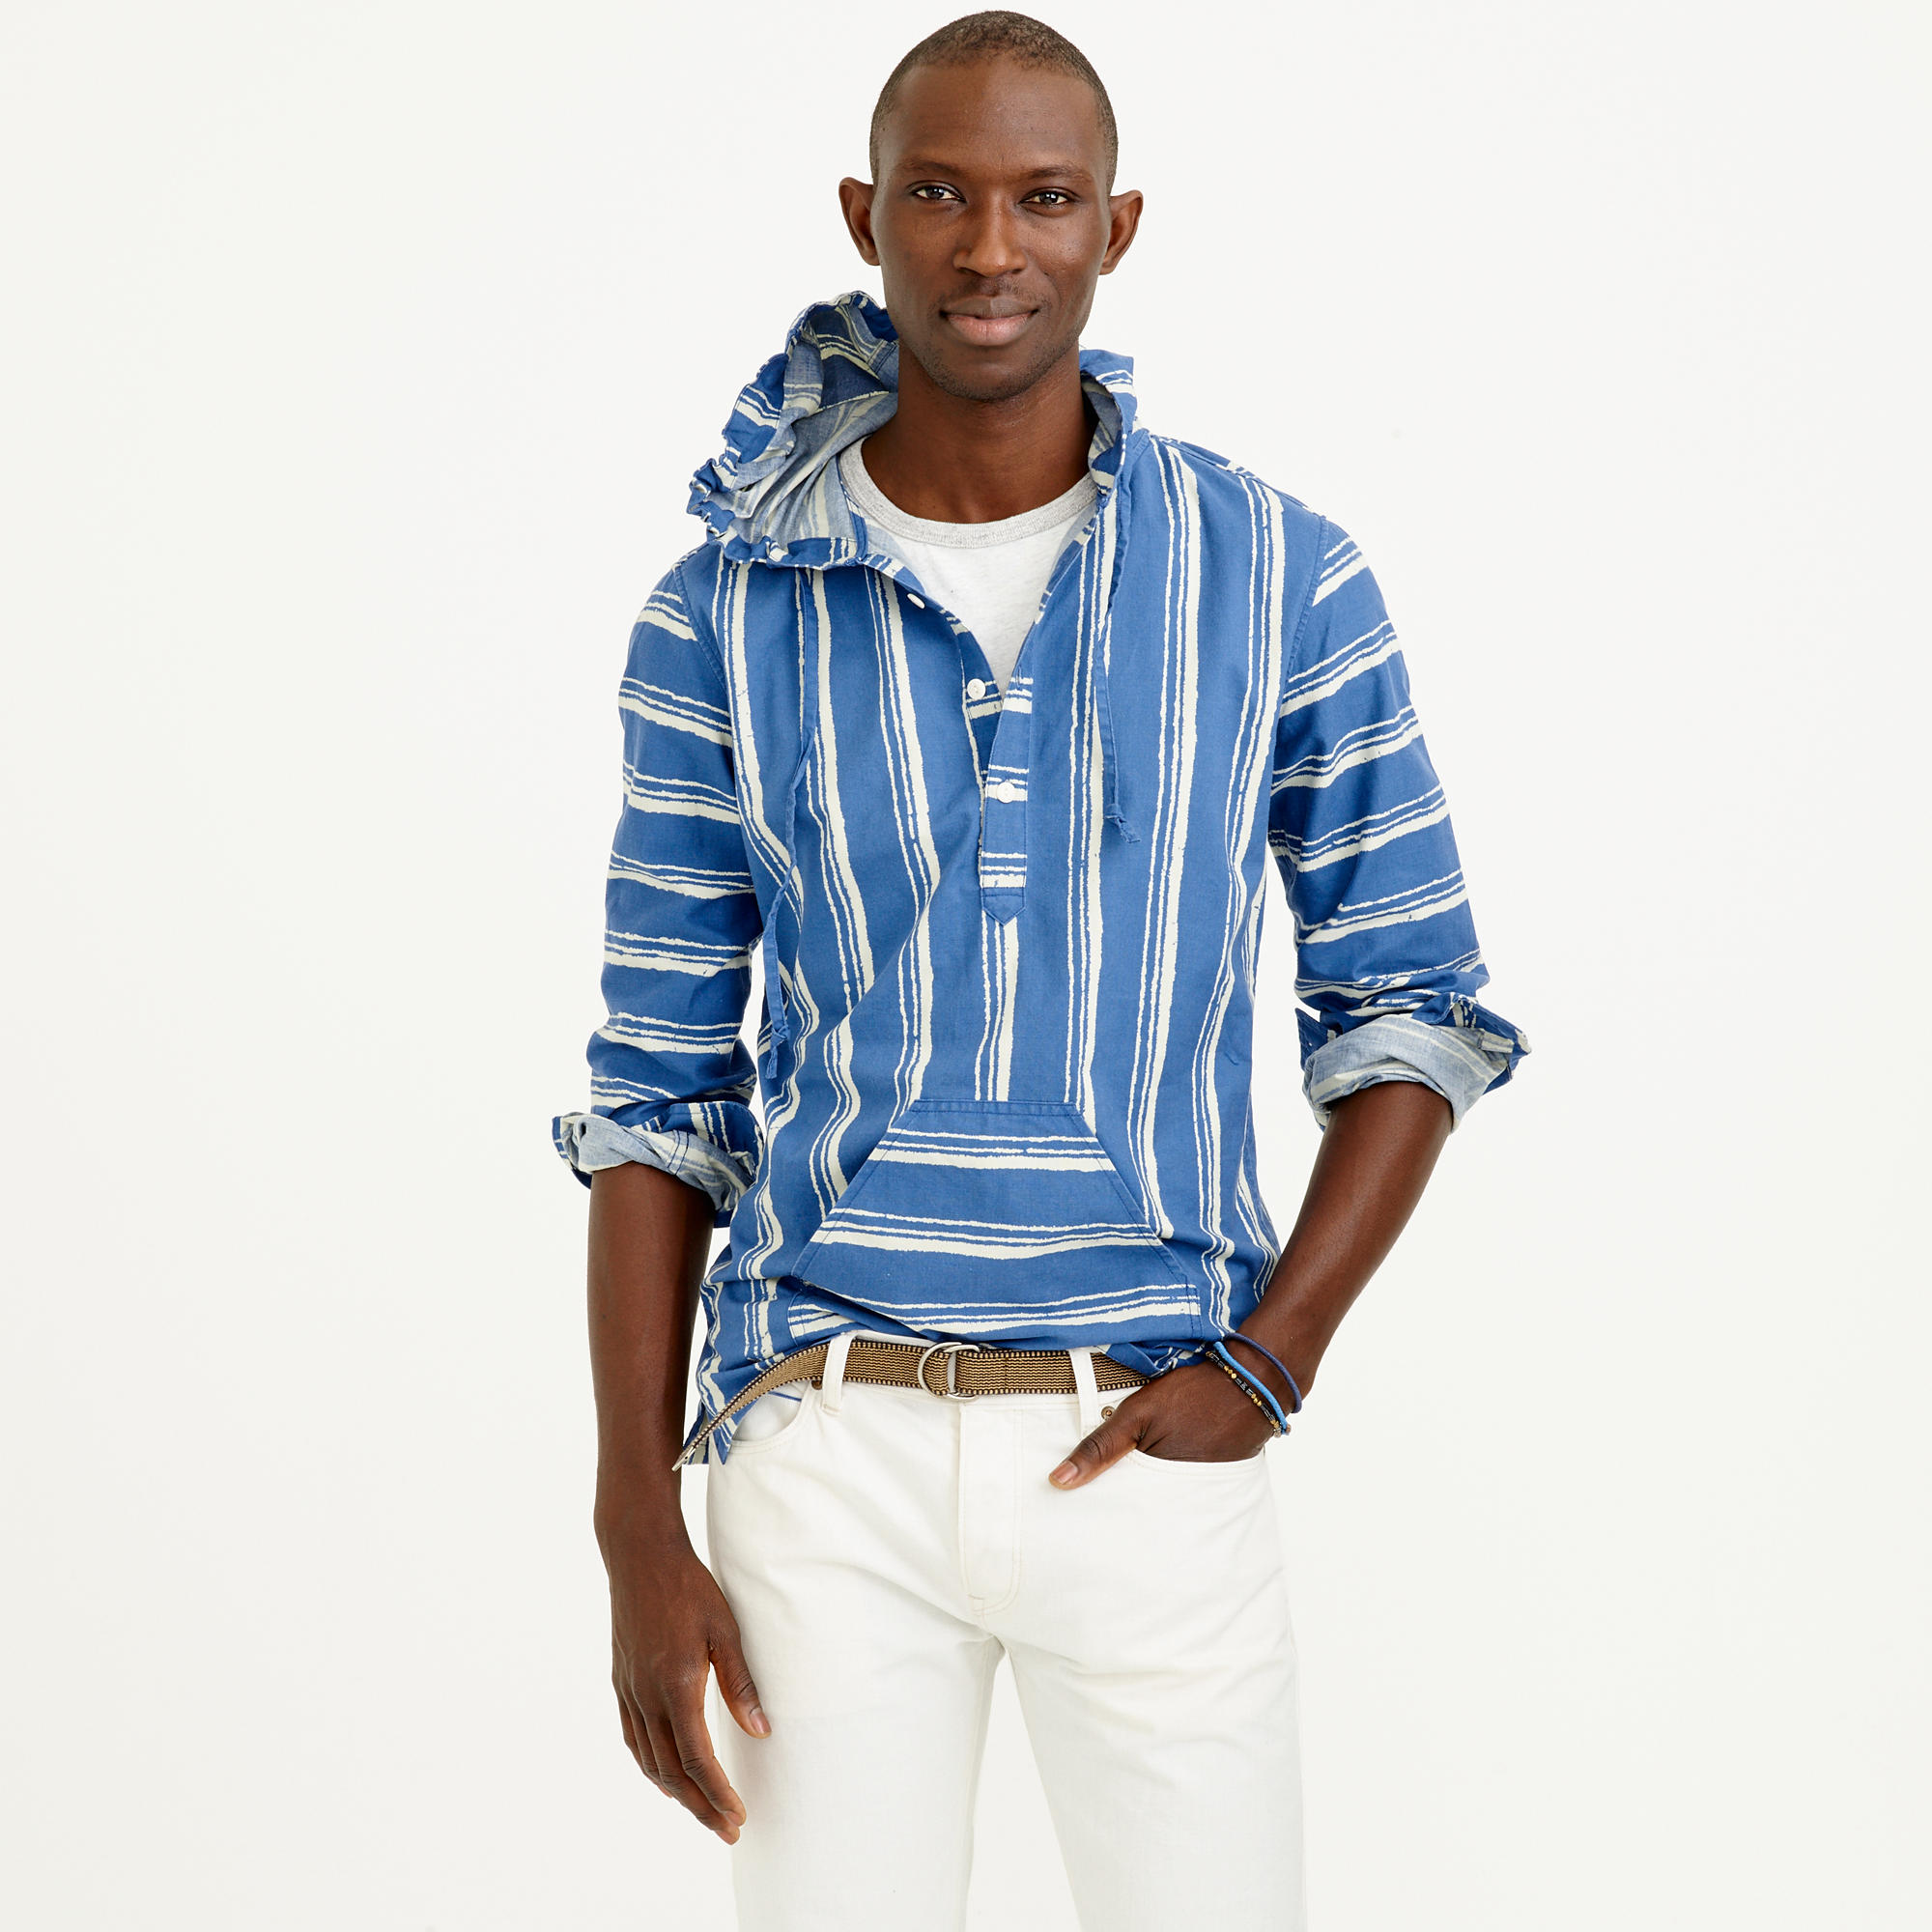 https://i.s-jcrew.com/is/image/jcrew/C5124_WP6772_m?$pdp_enlarge$